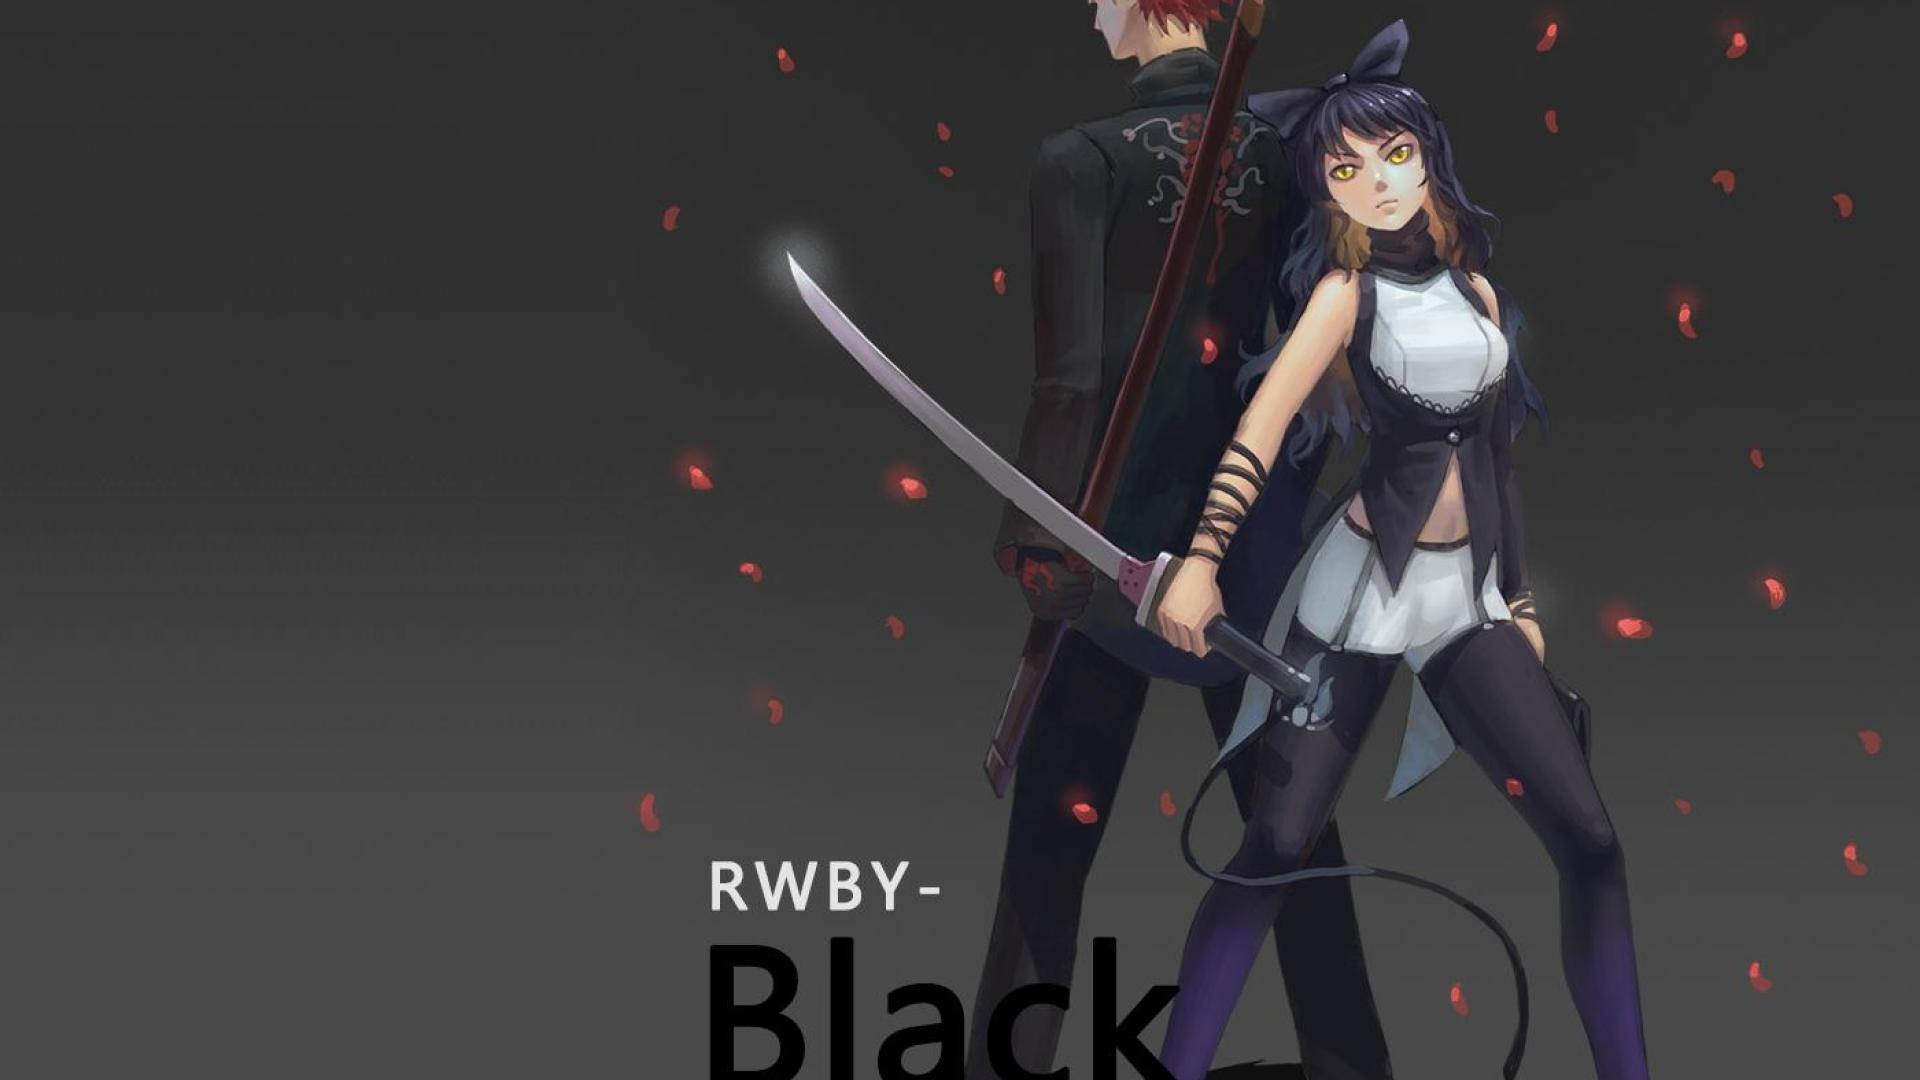 RWBY Desktop Wallpaper HD 1920 - WallpaperSafari